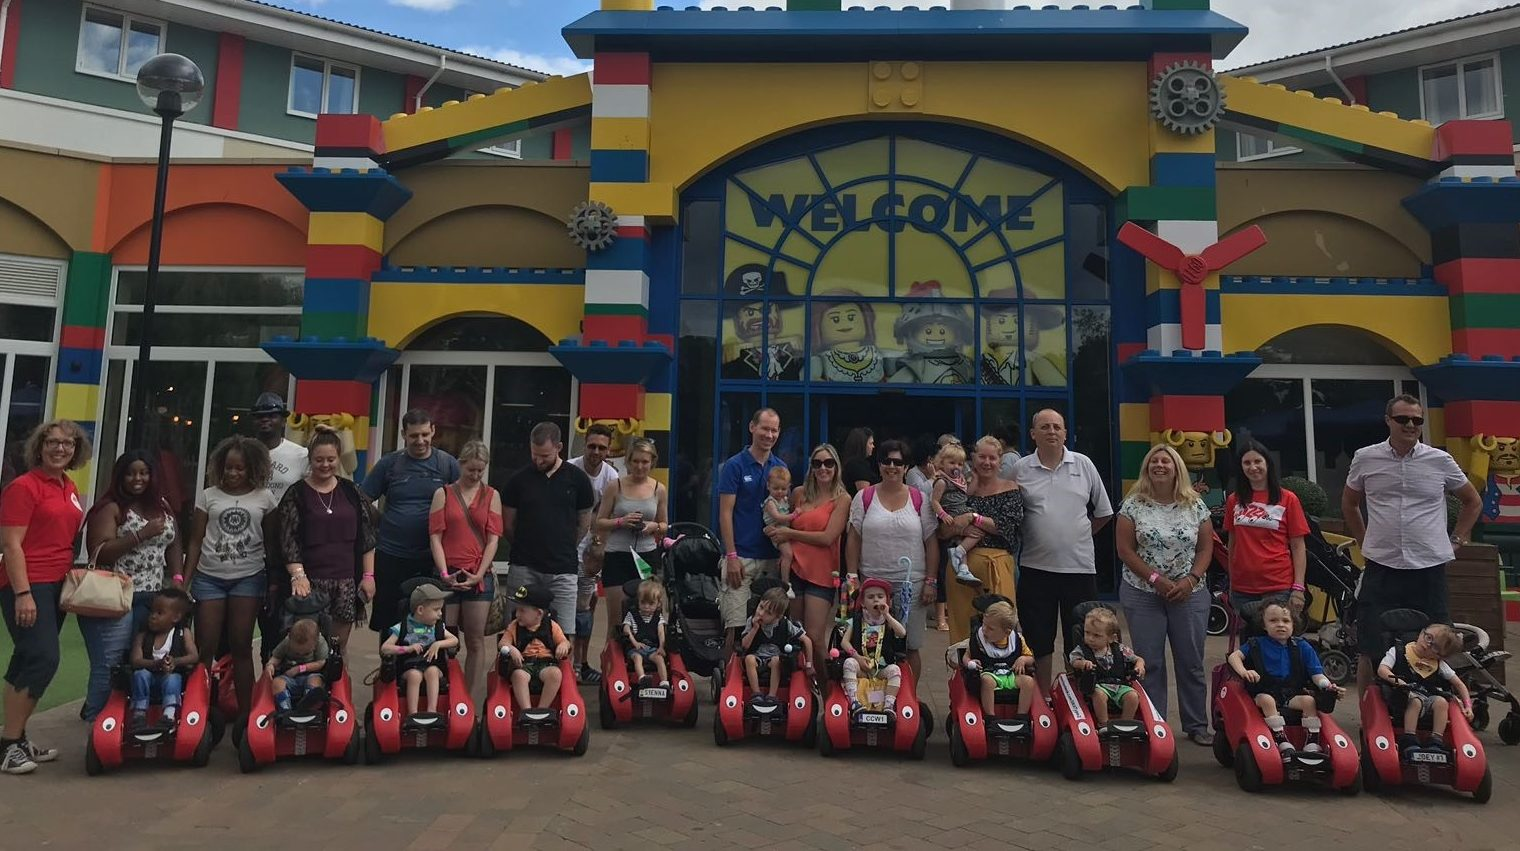 Lots of families standing together with children in Wizzybug wheelchairs at the entrance to Legoland